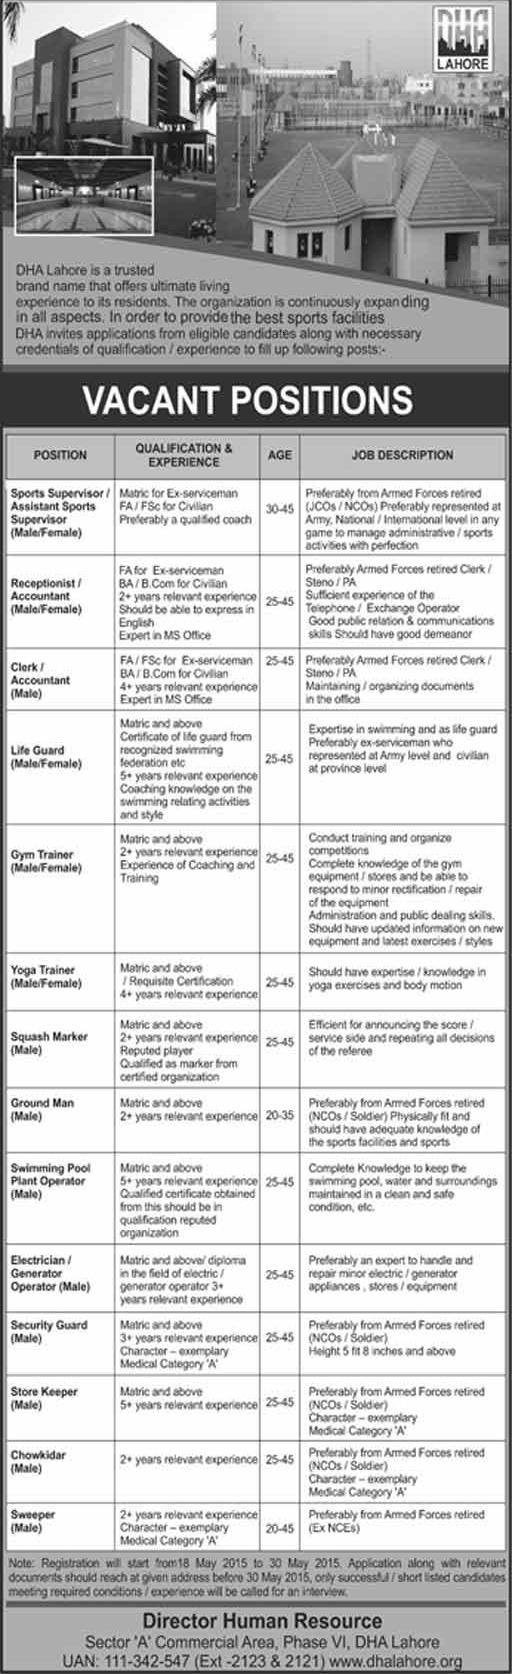 DHA Lahore Jobs in Sports Department - Registration Starts on May 18, 2015